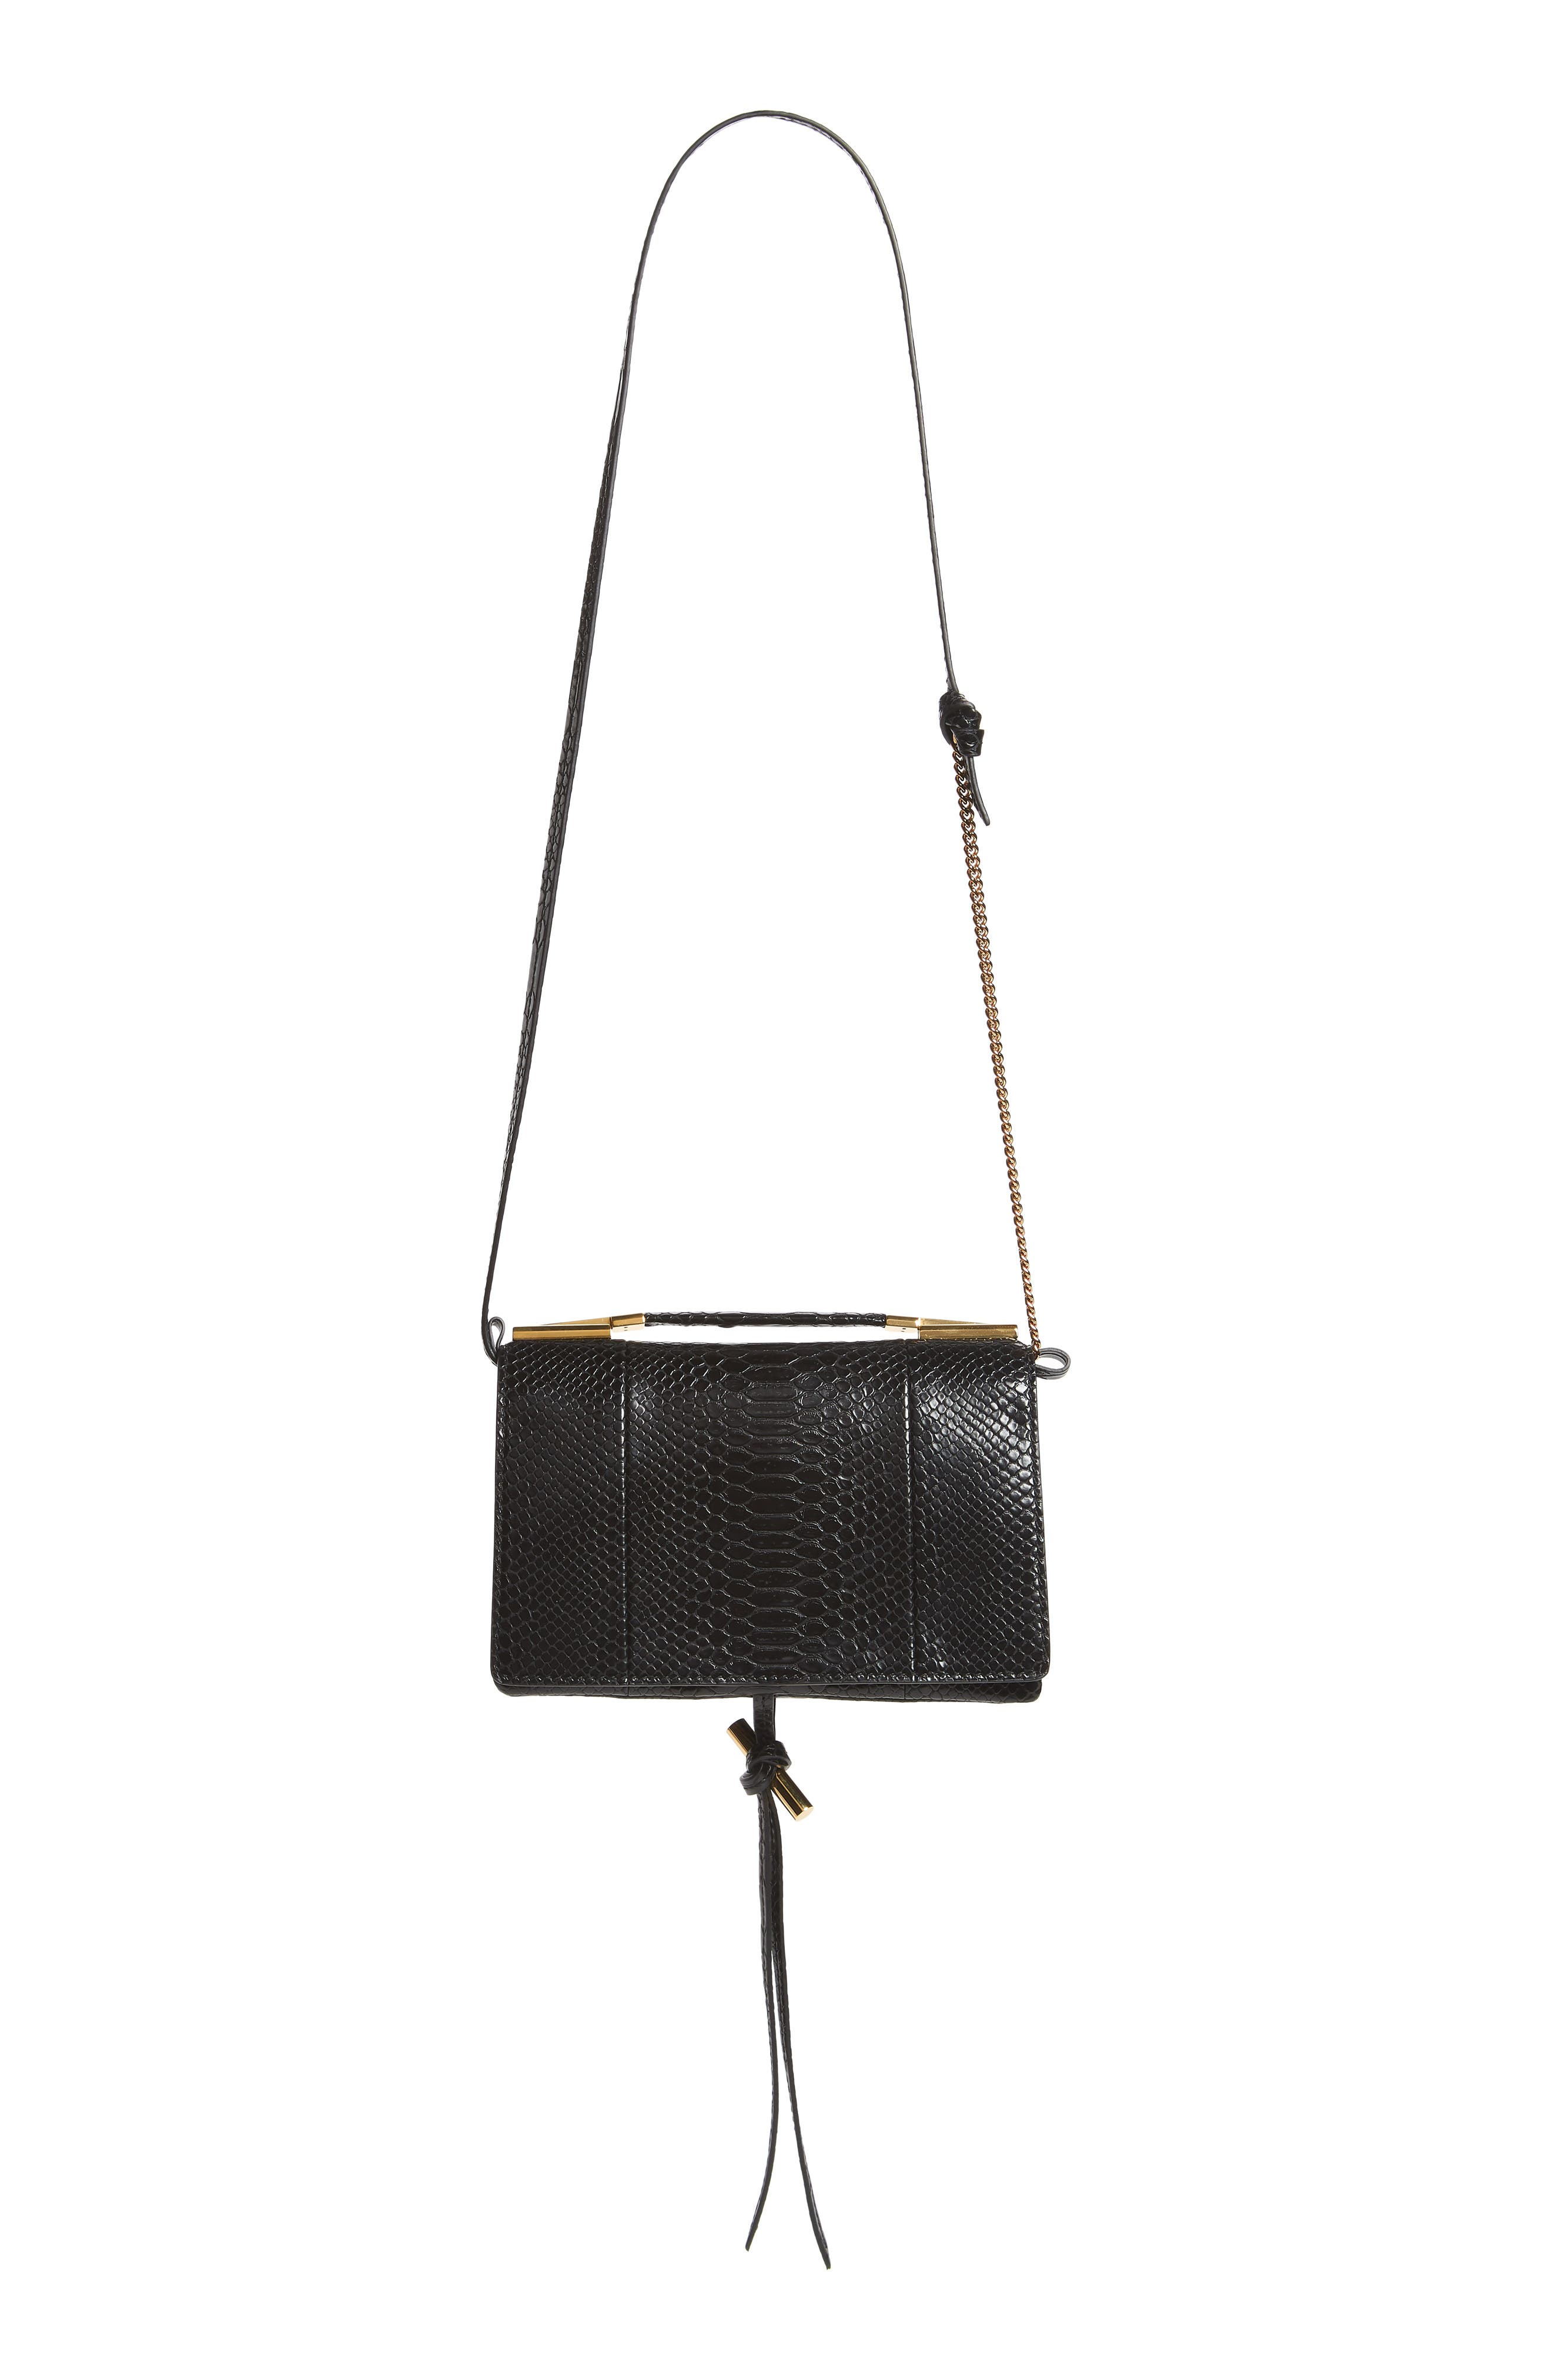 Alternate Image 1 Selected - Stella McCartney Small Flo Alter Snake Faux Leather Shoulder Bag